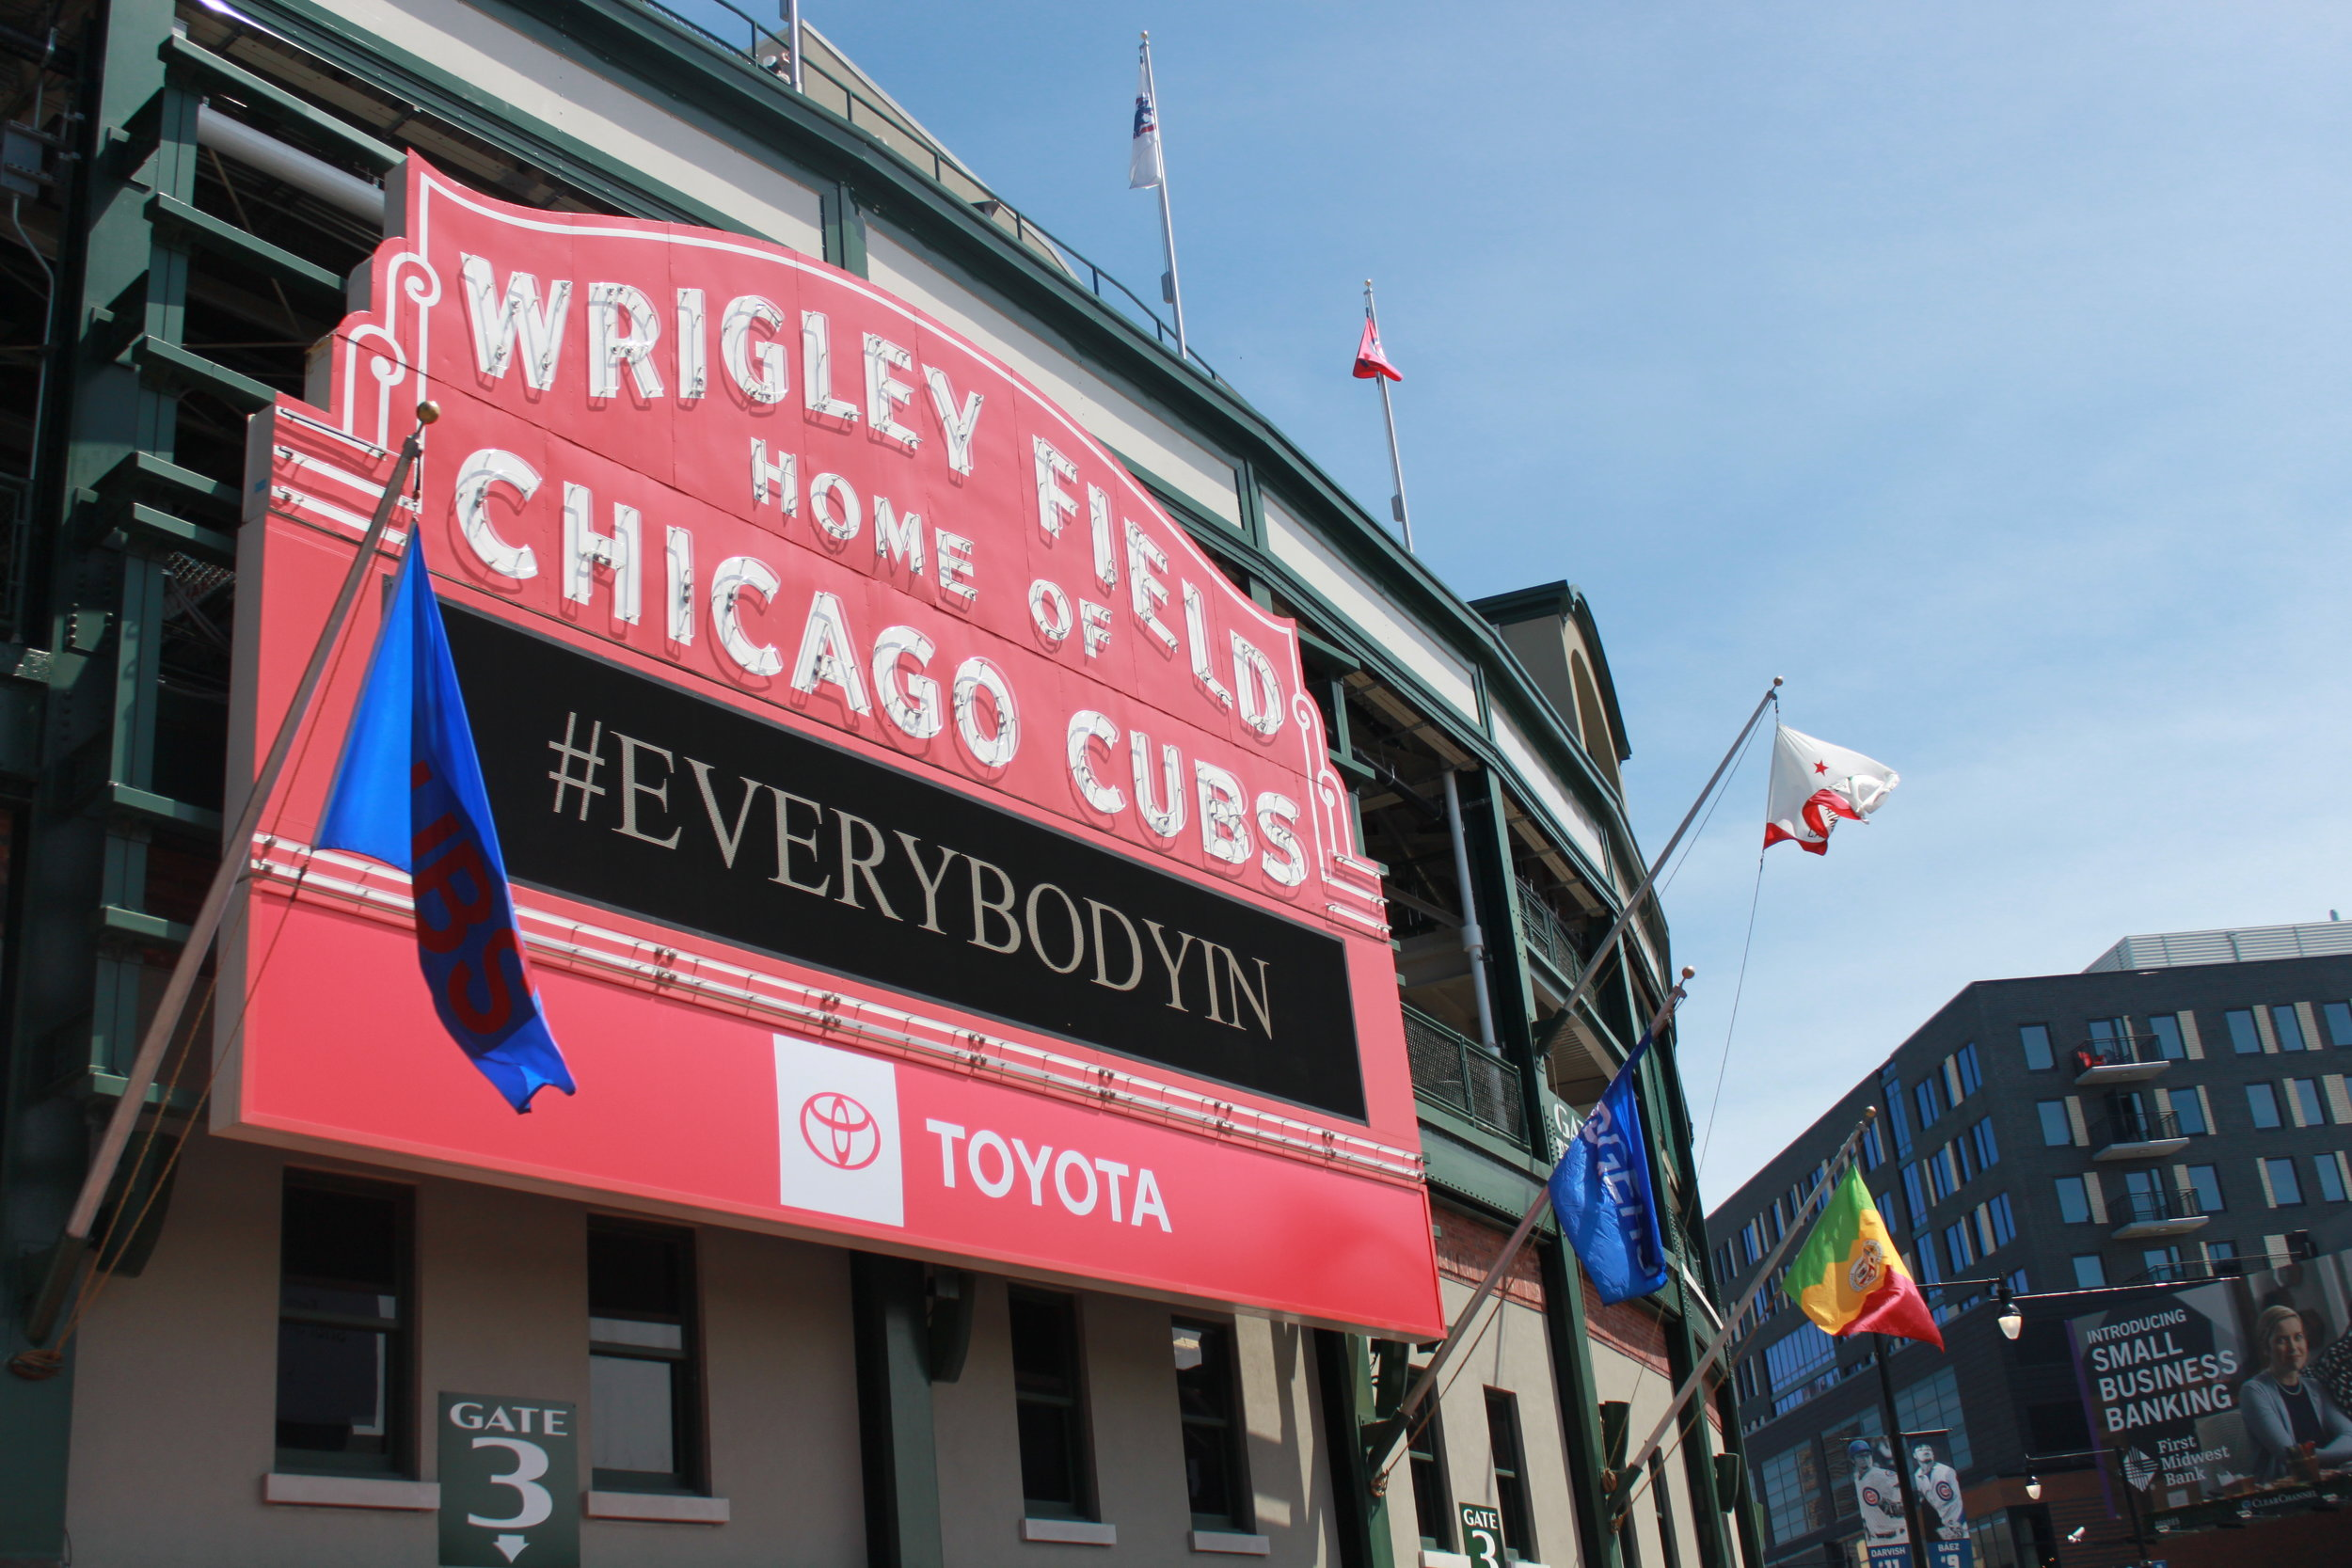 The famous sign on Wrigley Field